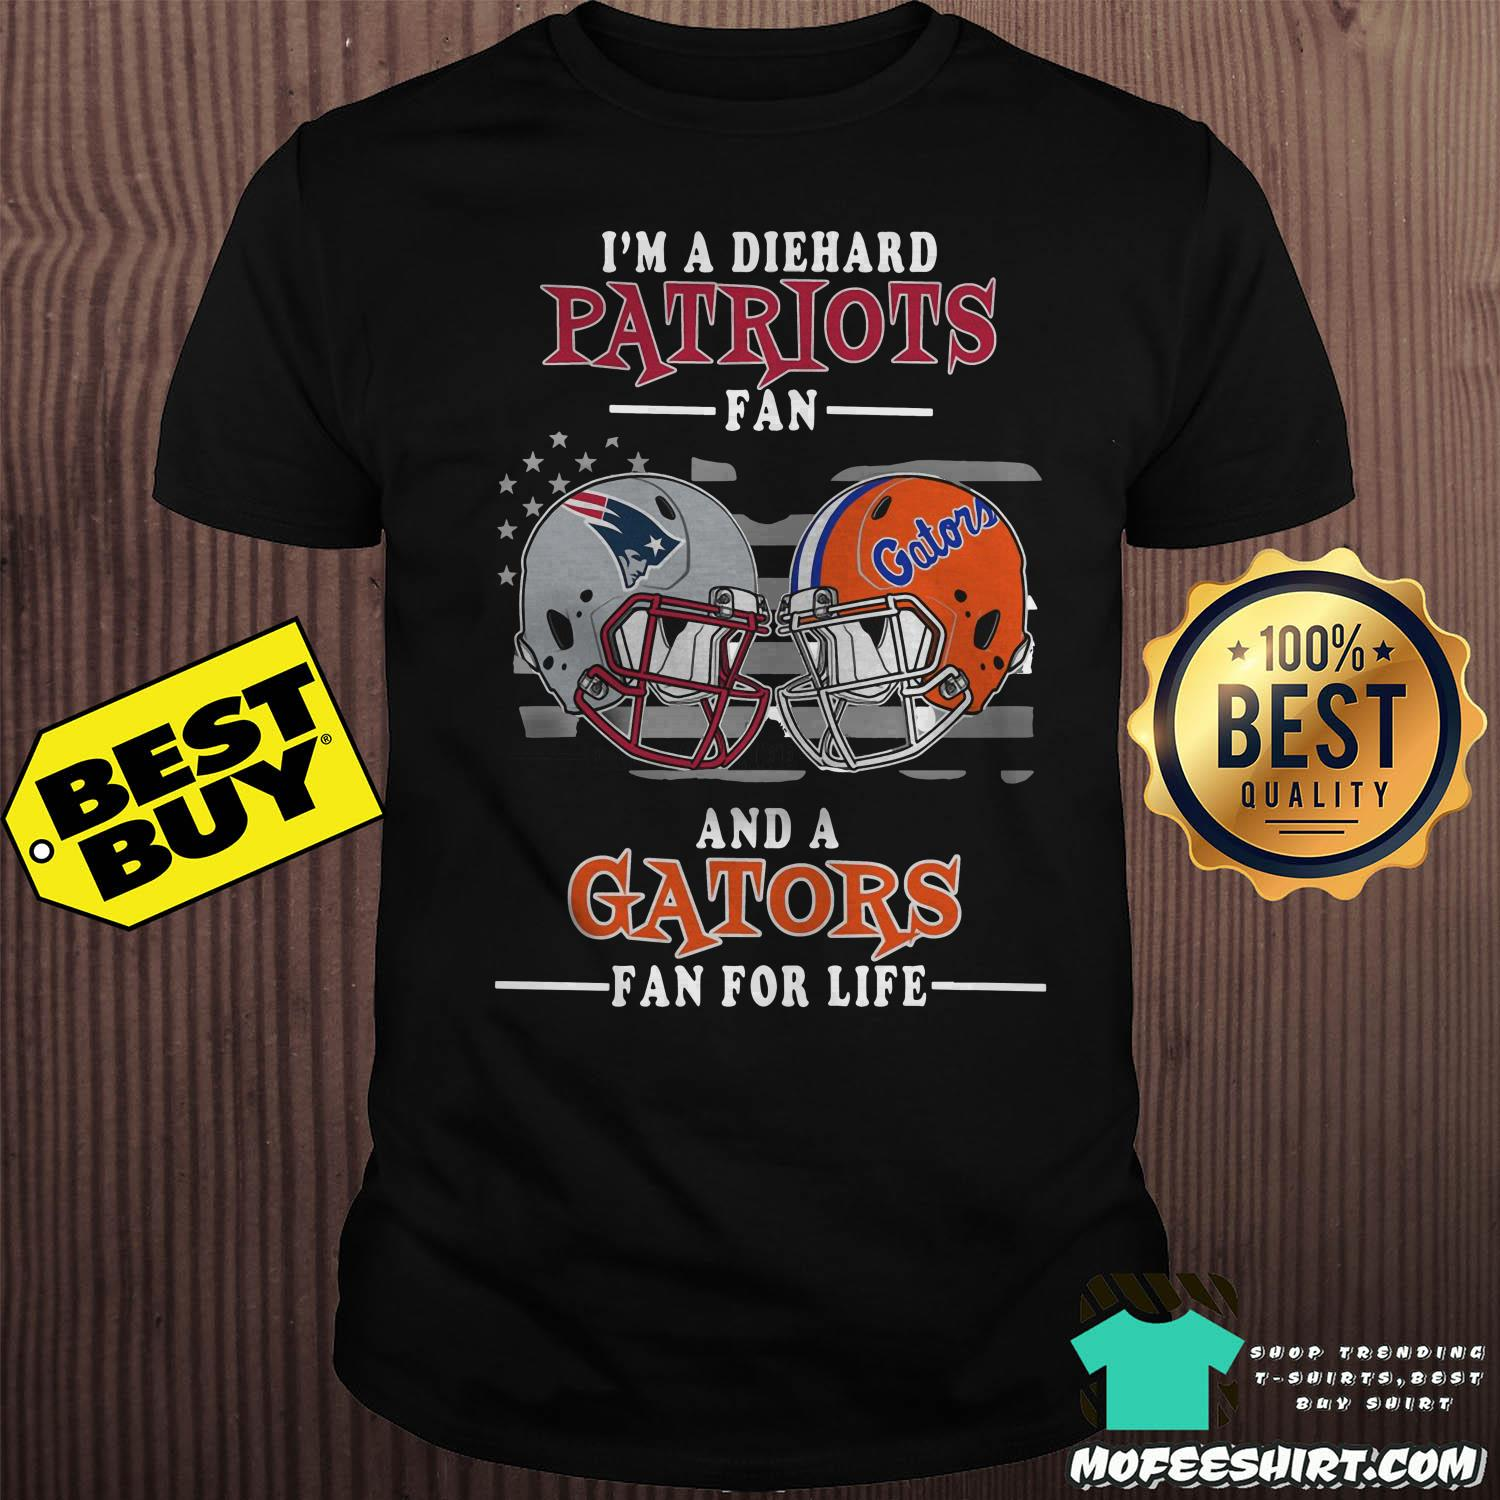 im a diehard patriots fan and a gators for life shirt - I'm A Diehard Patriots Fan And A Gators For Life Shirt